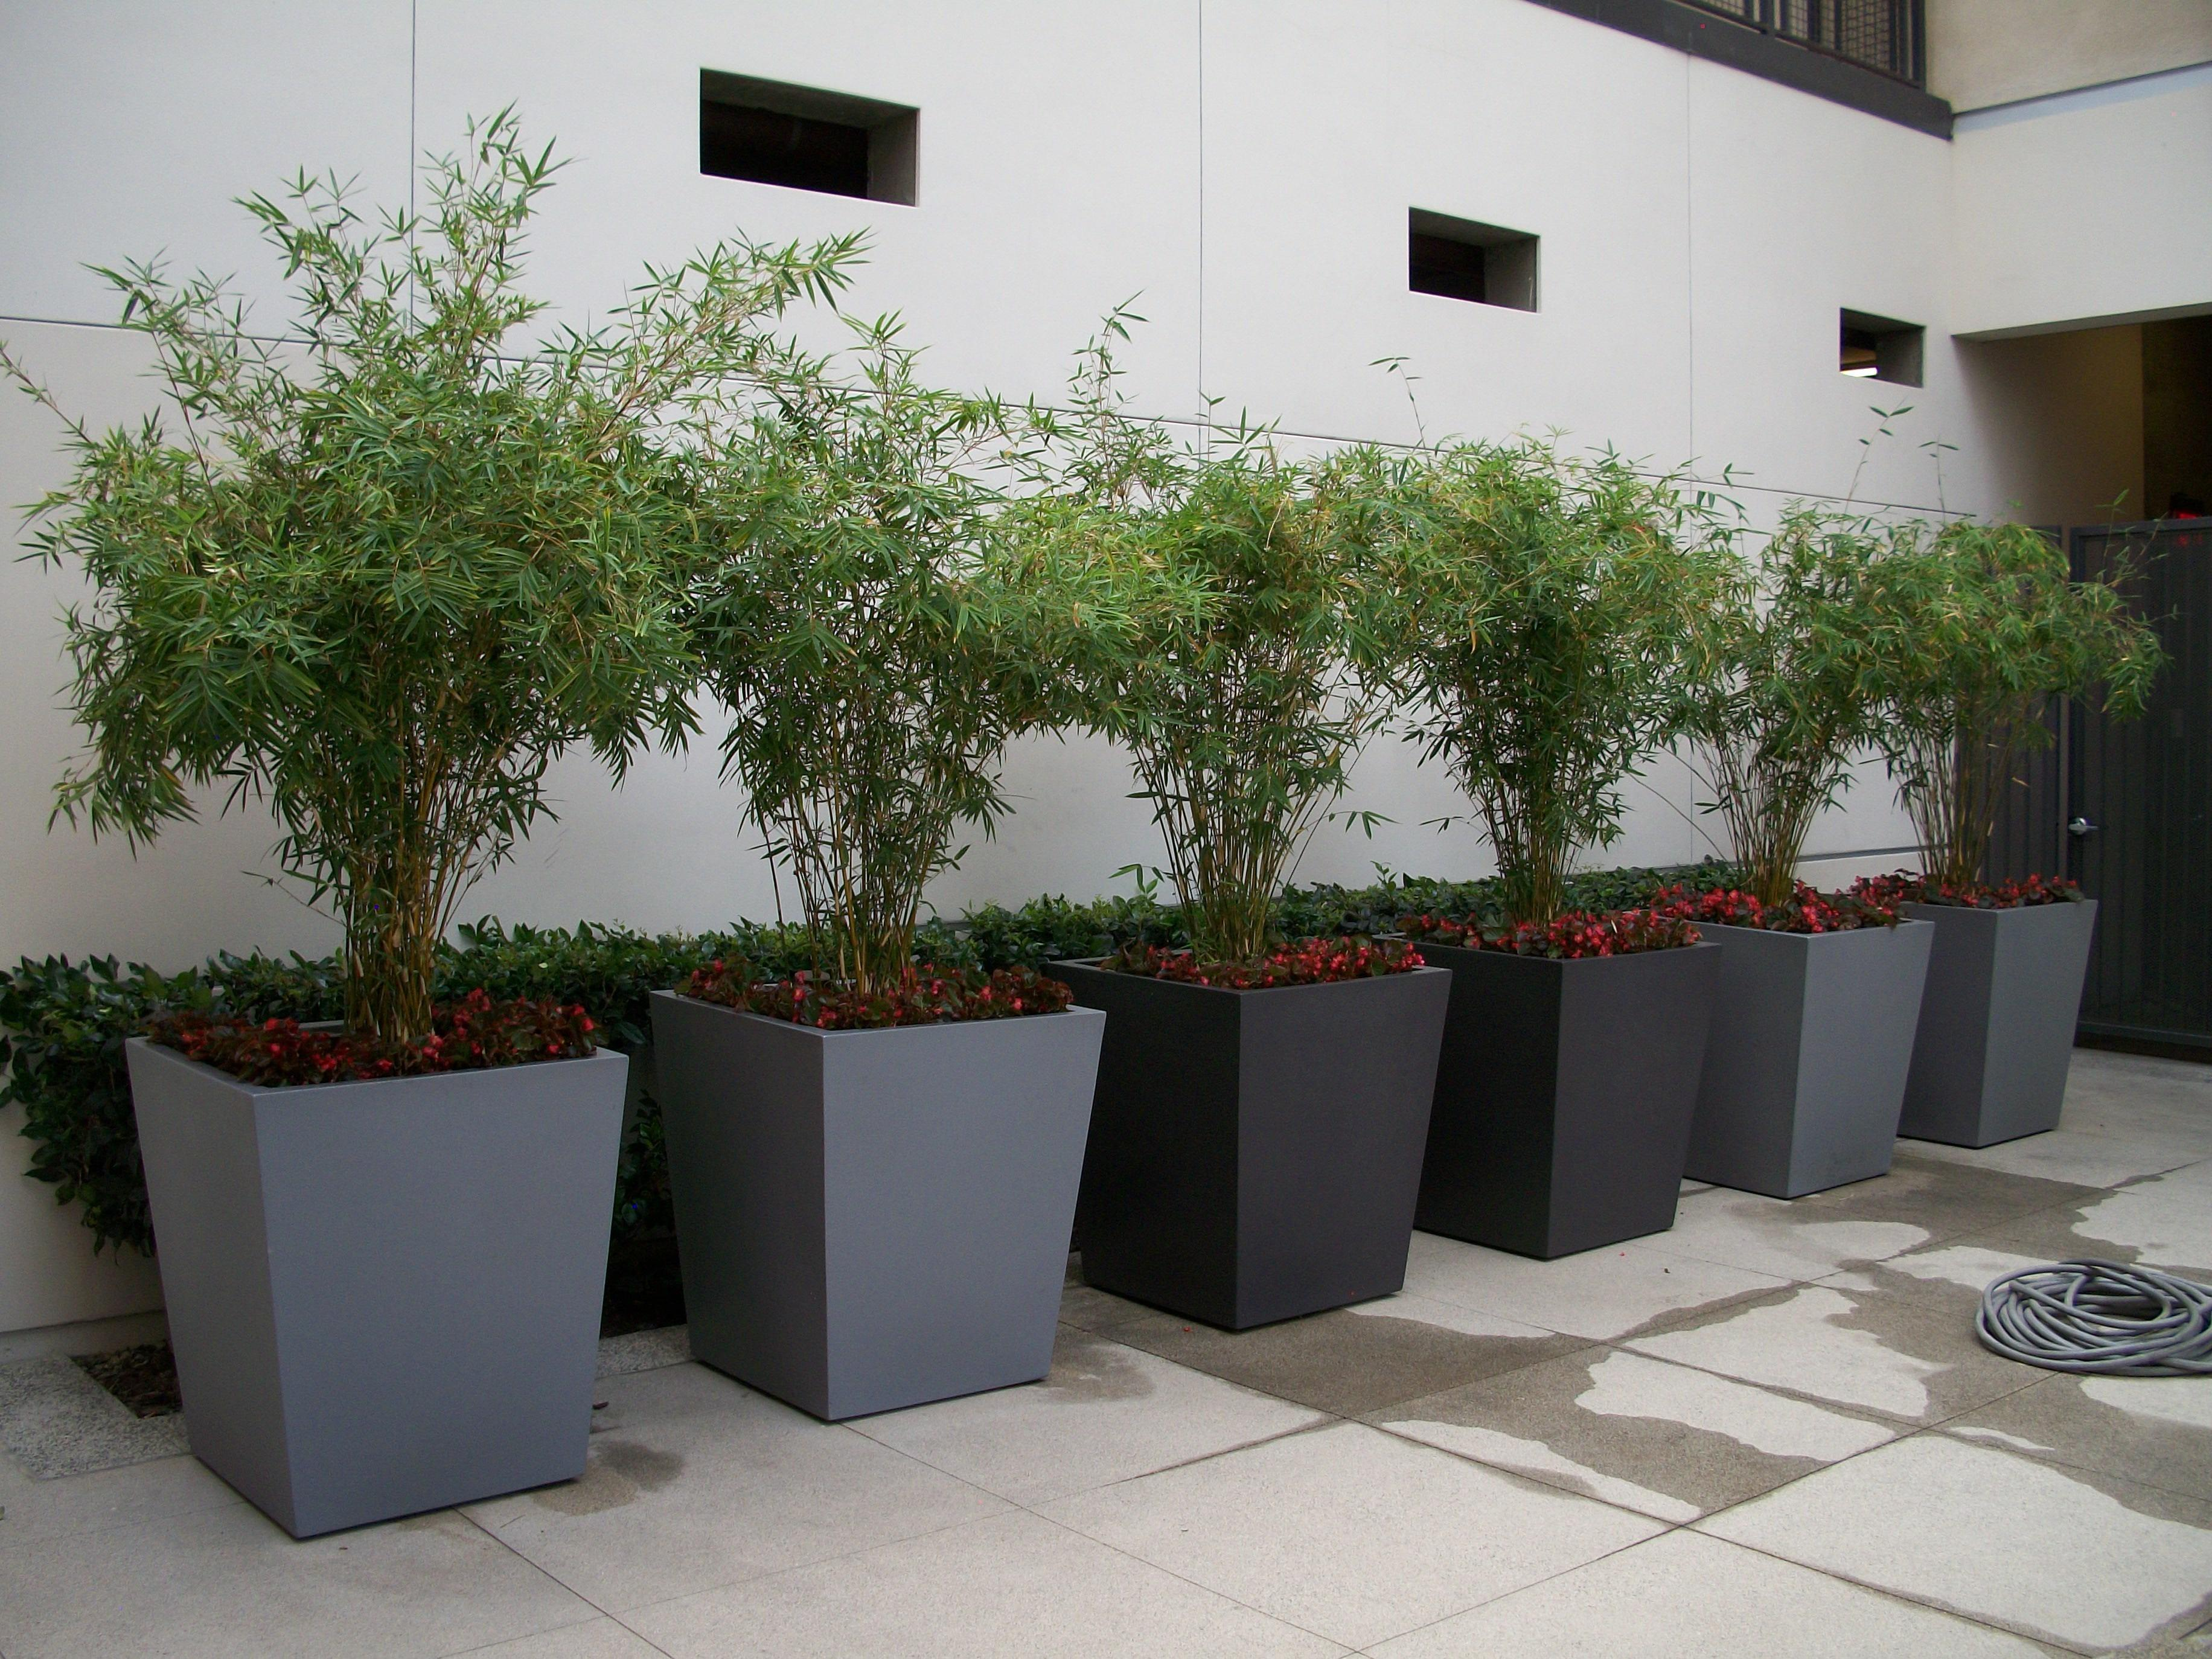 Architectural Planters Award Winning Contemporary